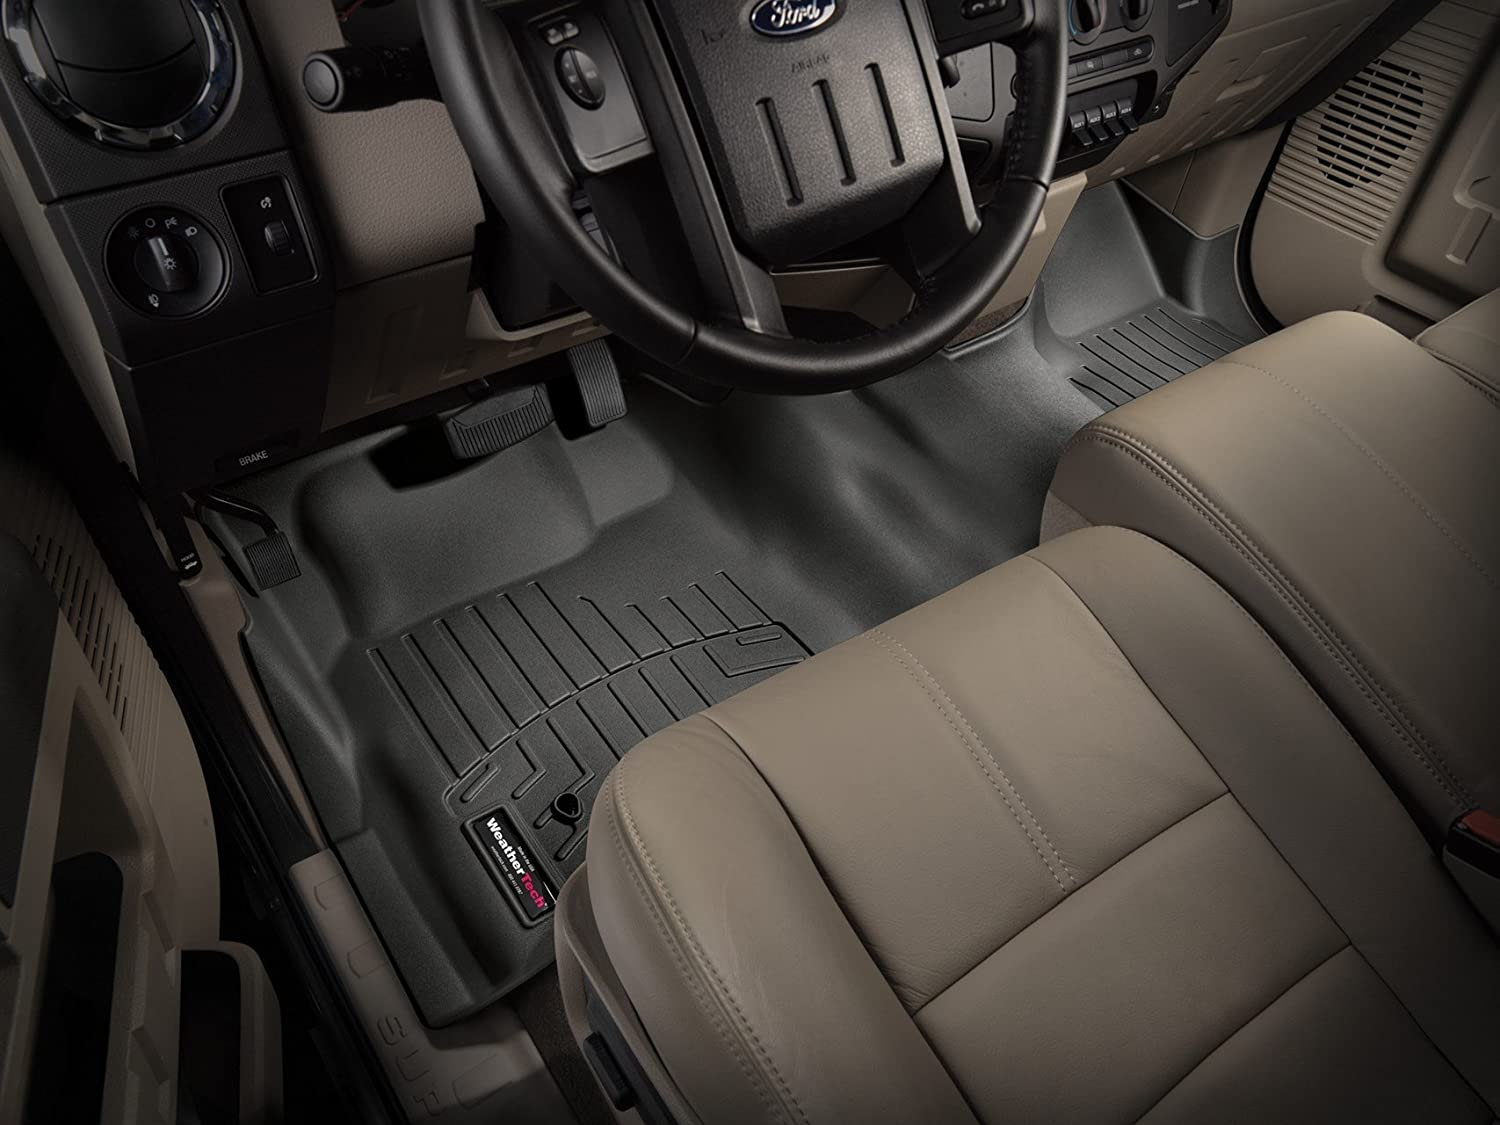 Weathertech mats for jeep grand cherokee - Amazon Com 2015 2016 Jeep Cherokee Weathertech Front Set Floor Liners Models With Out Raised Floor Black Automotive